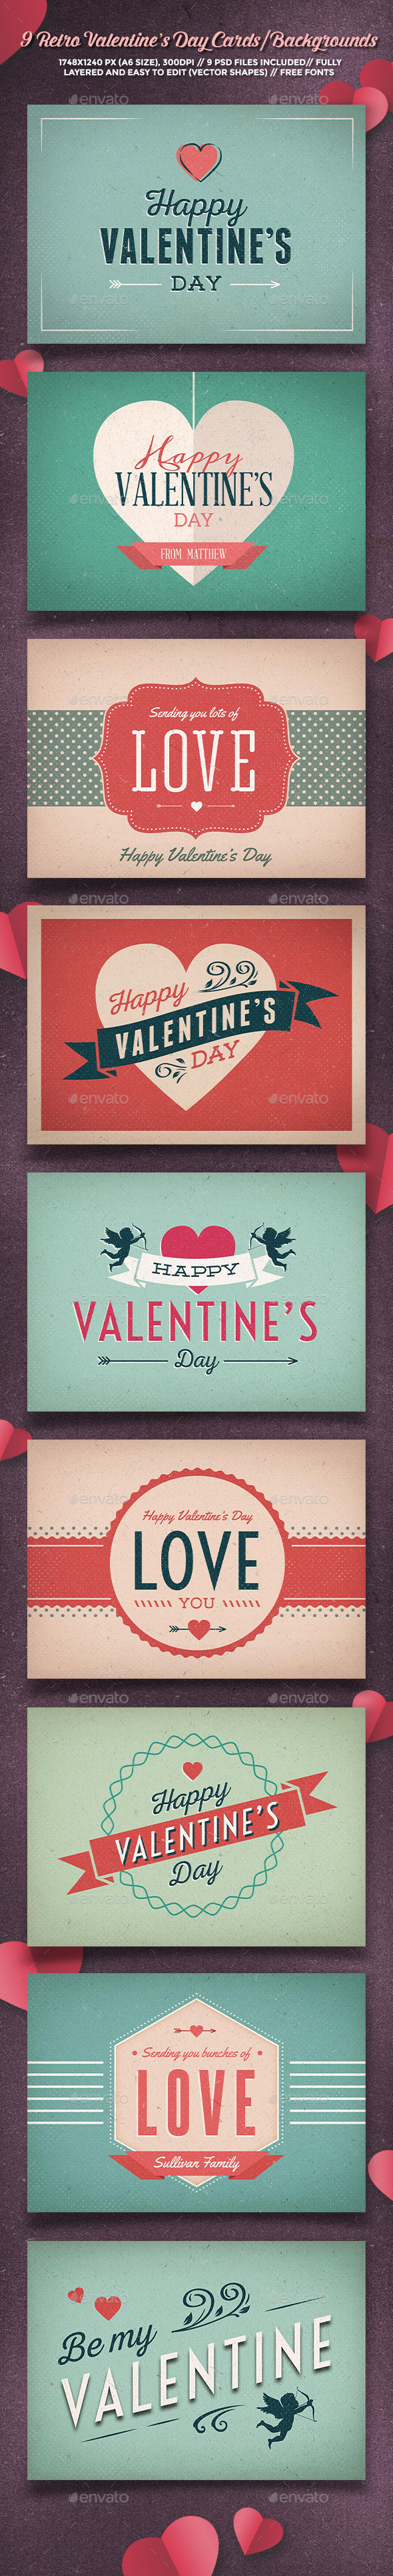 9 Retro Valentine's Day Cards/Backgrounds - Backgrounds Graphics